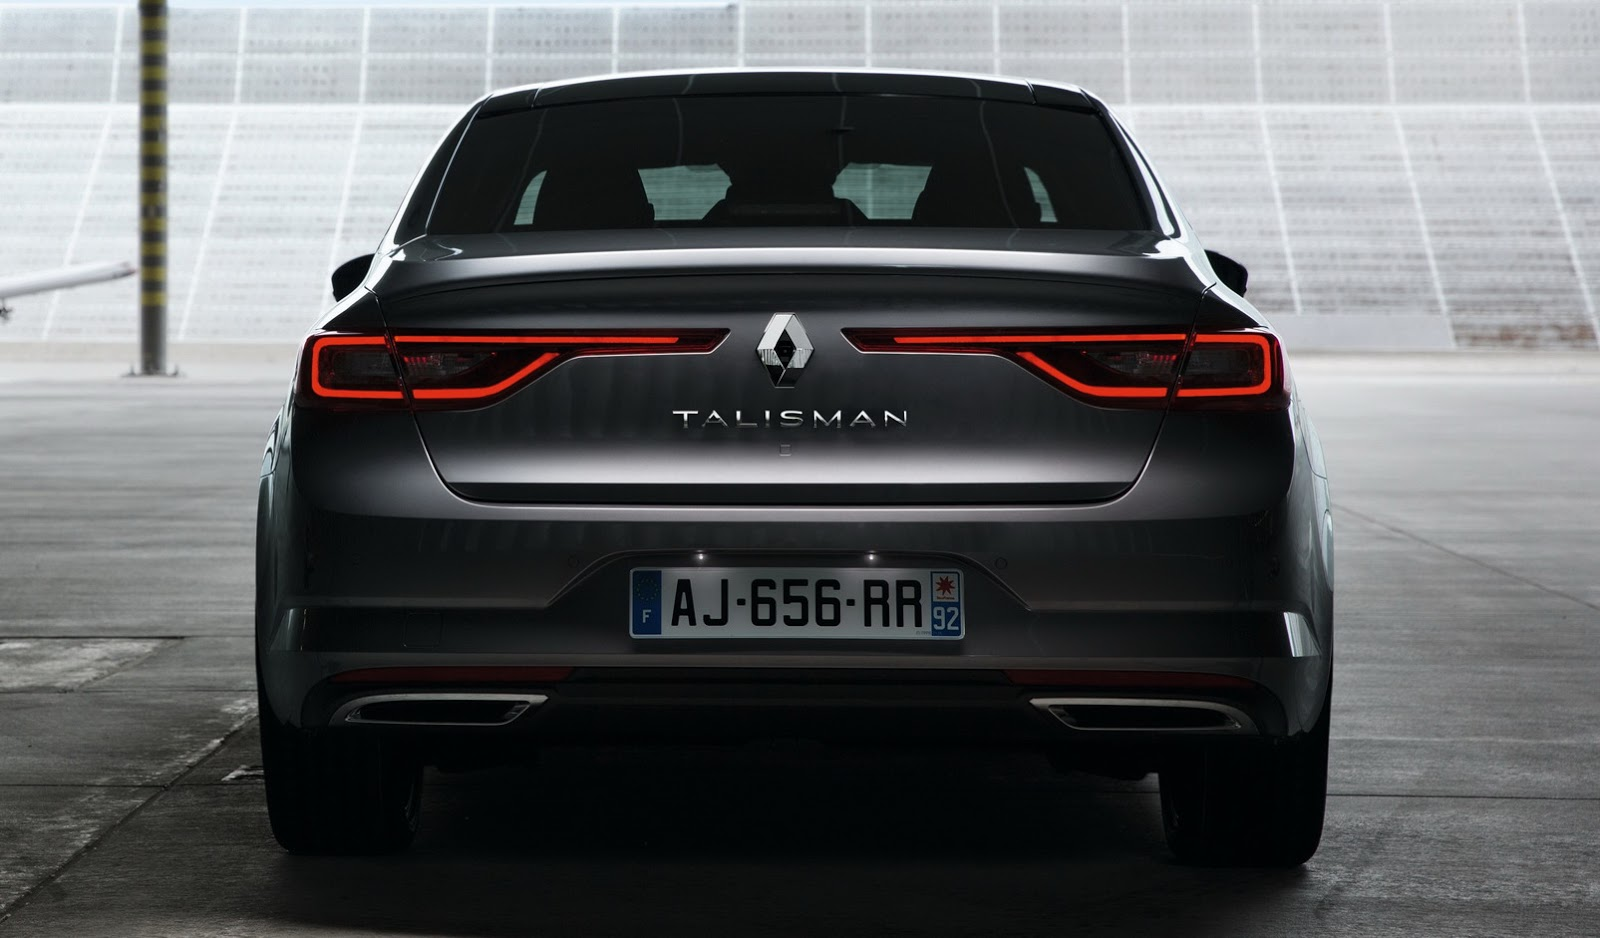 The New Renault Talisman Is Out And It's… Unmistakably German [68 Pics & Video]